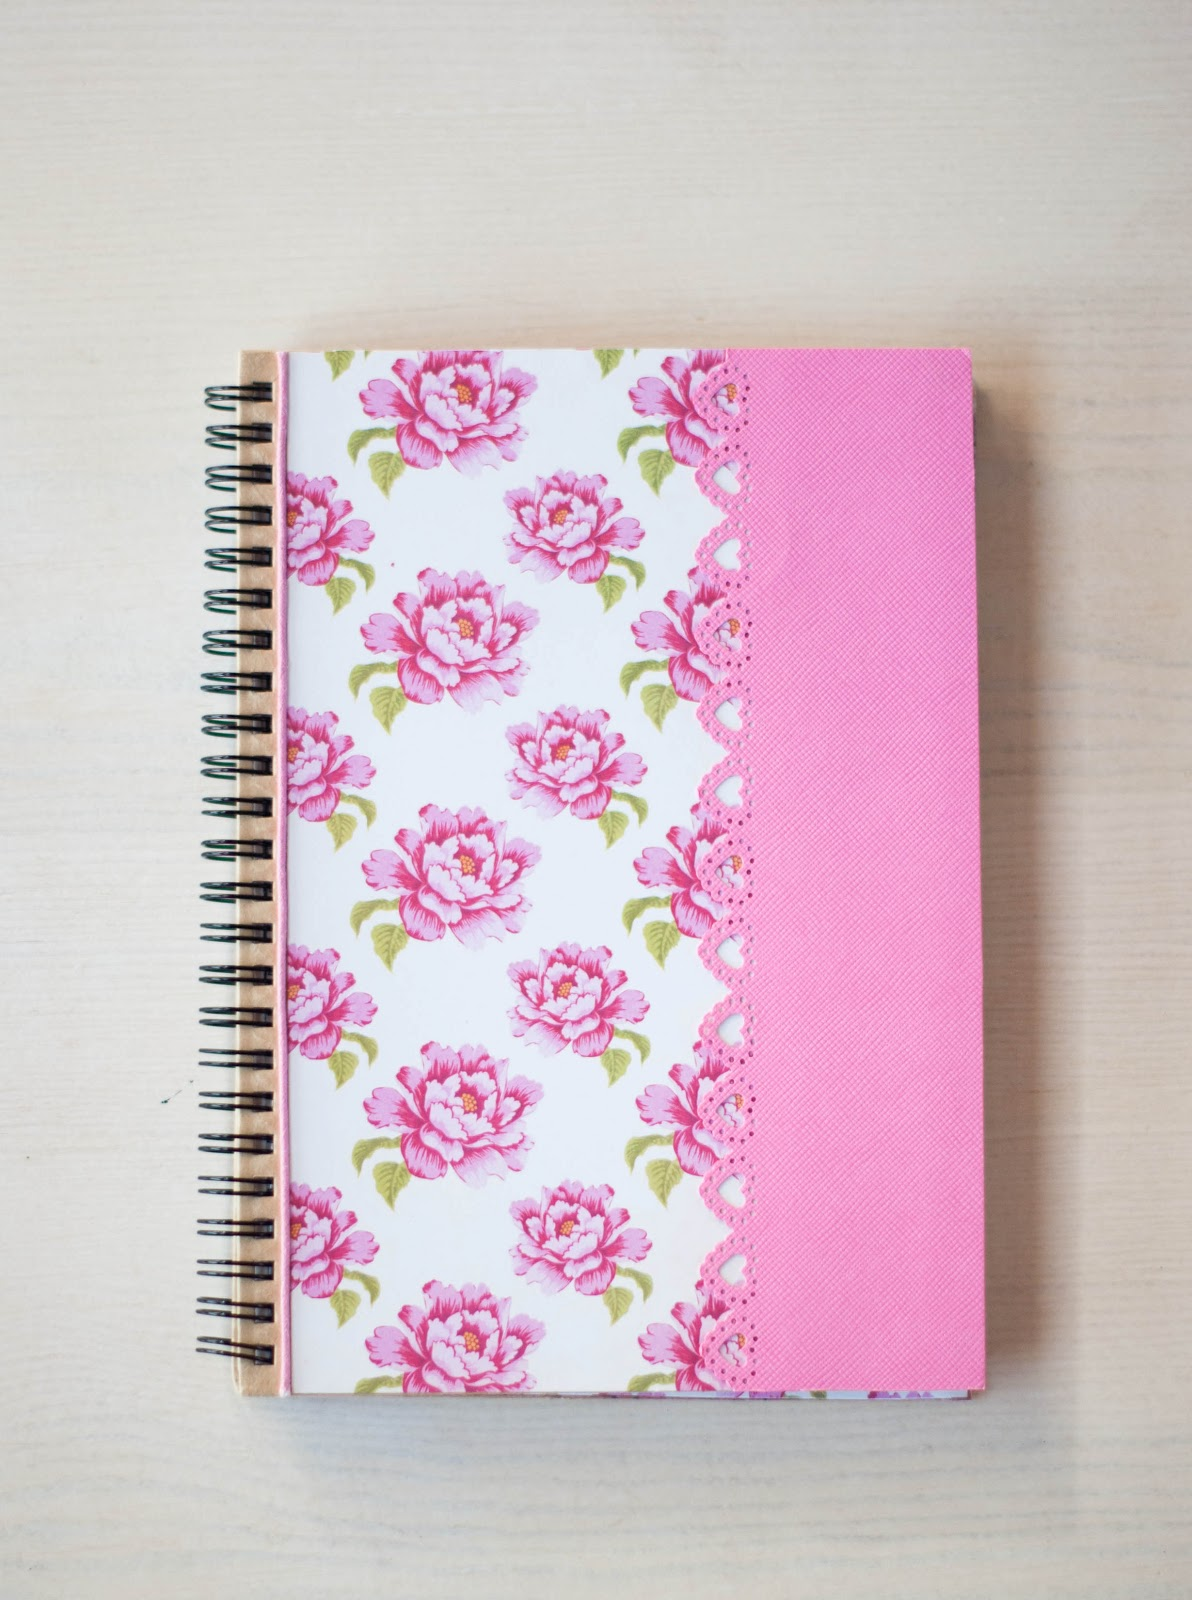 Como Decorar Cuadernos 1000 43 Ideas About Decora Tus Cuadernos On Pinterest Como